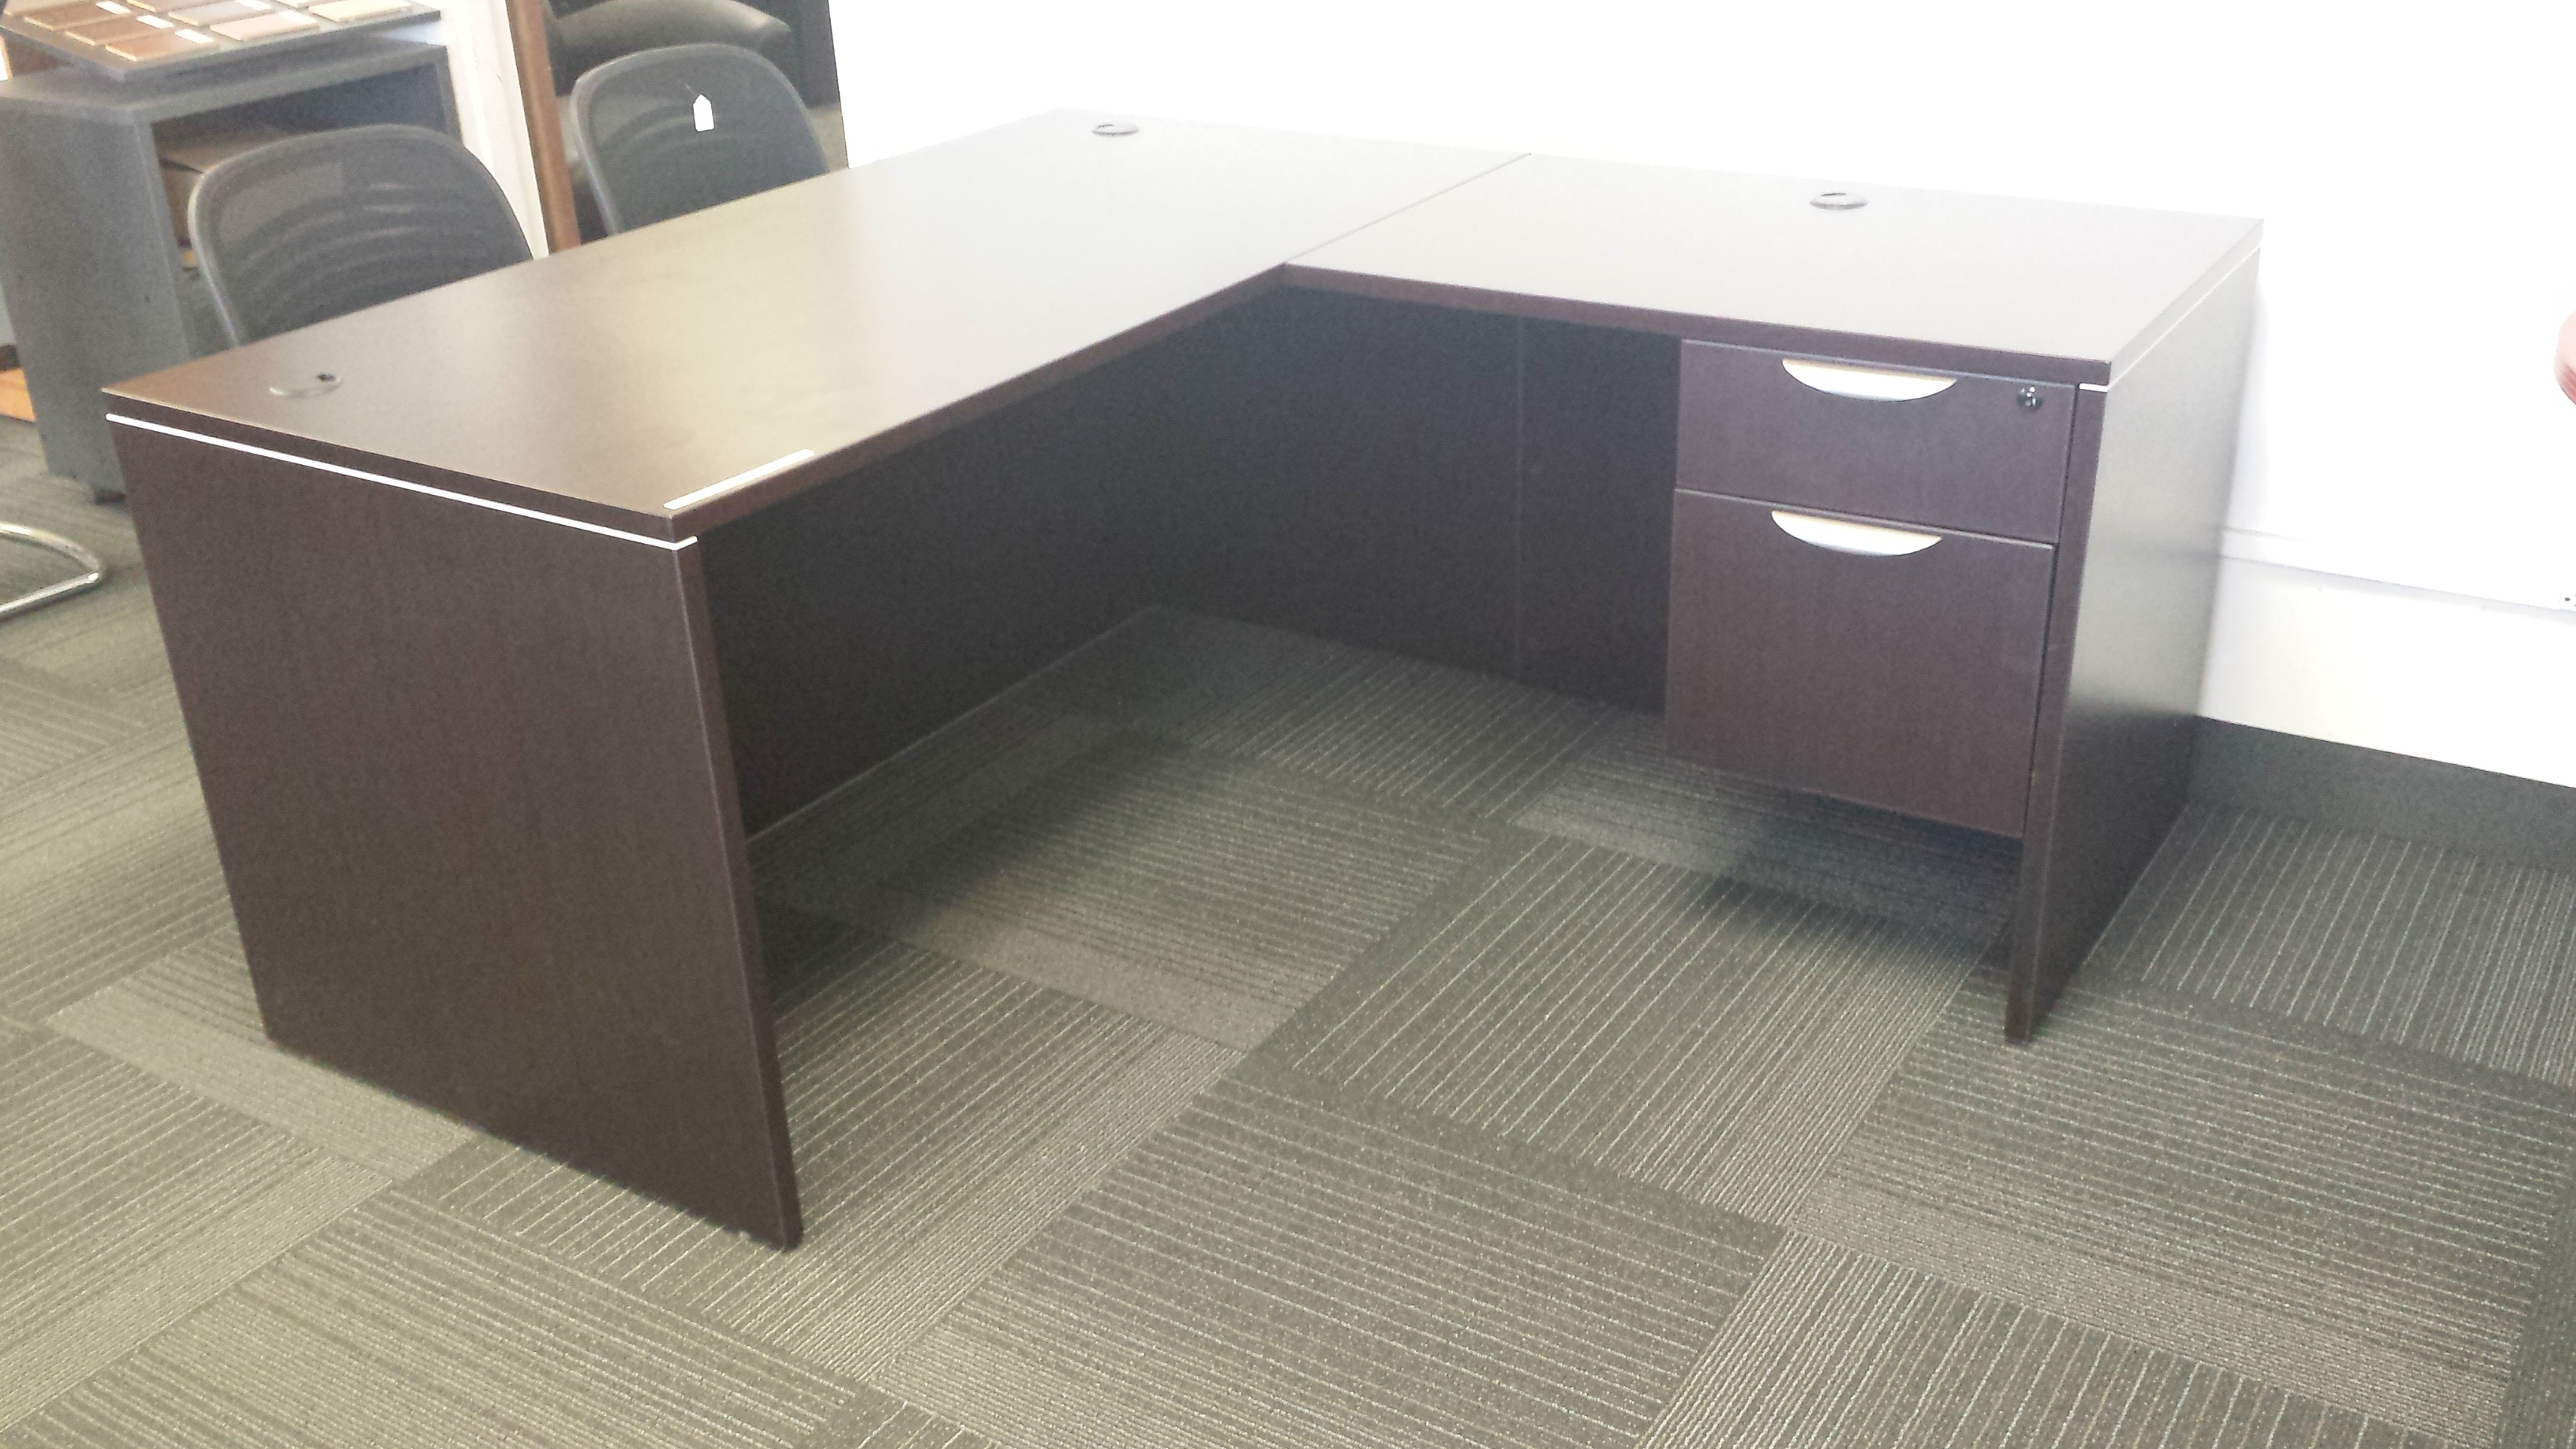 products categories desks archive | office liquidators | new and